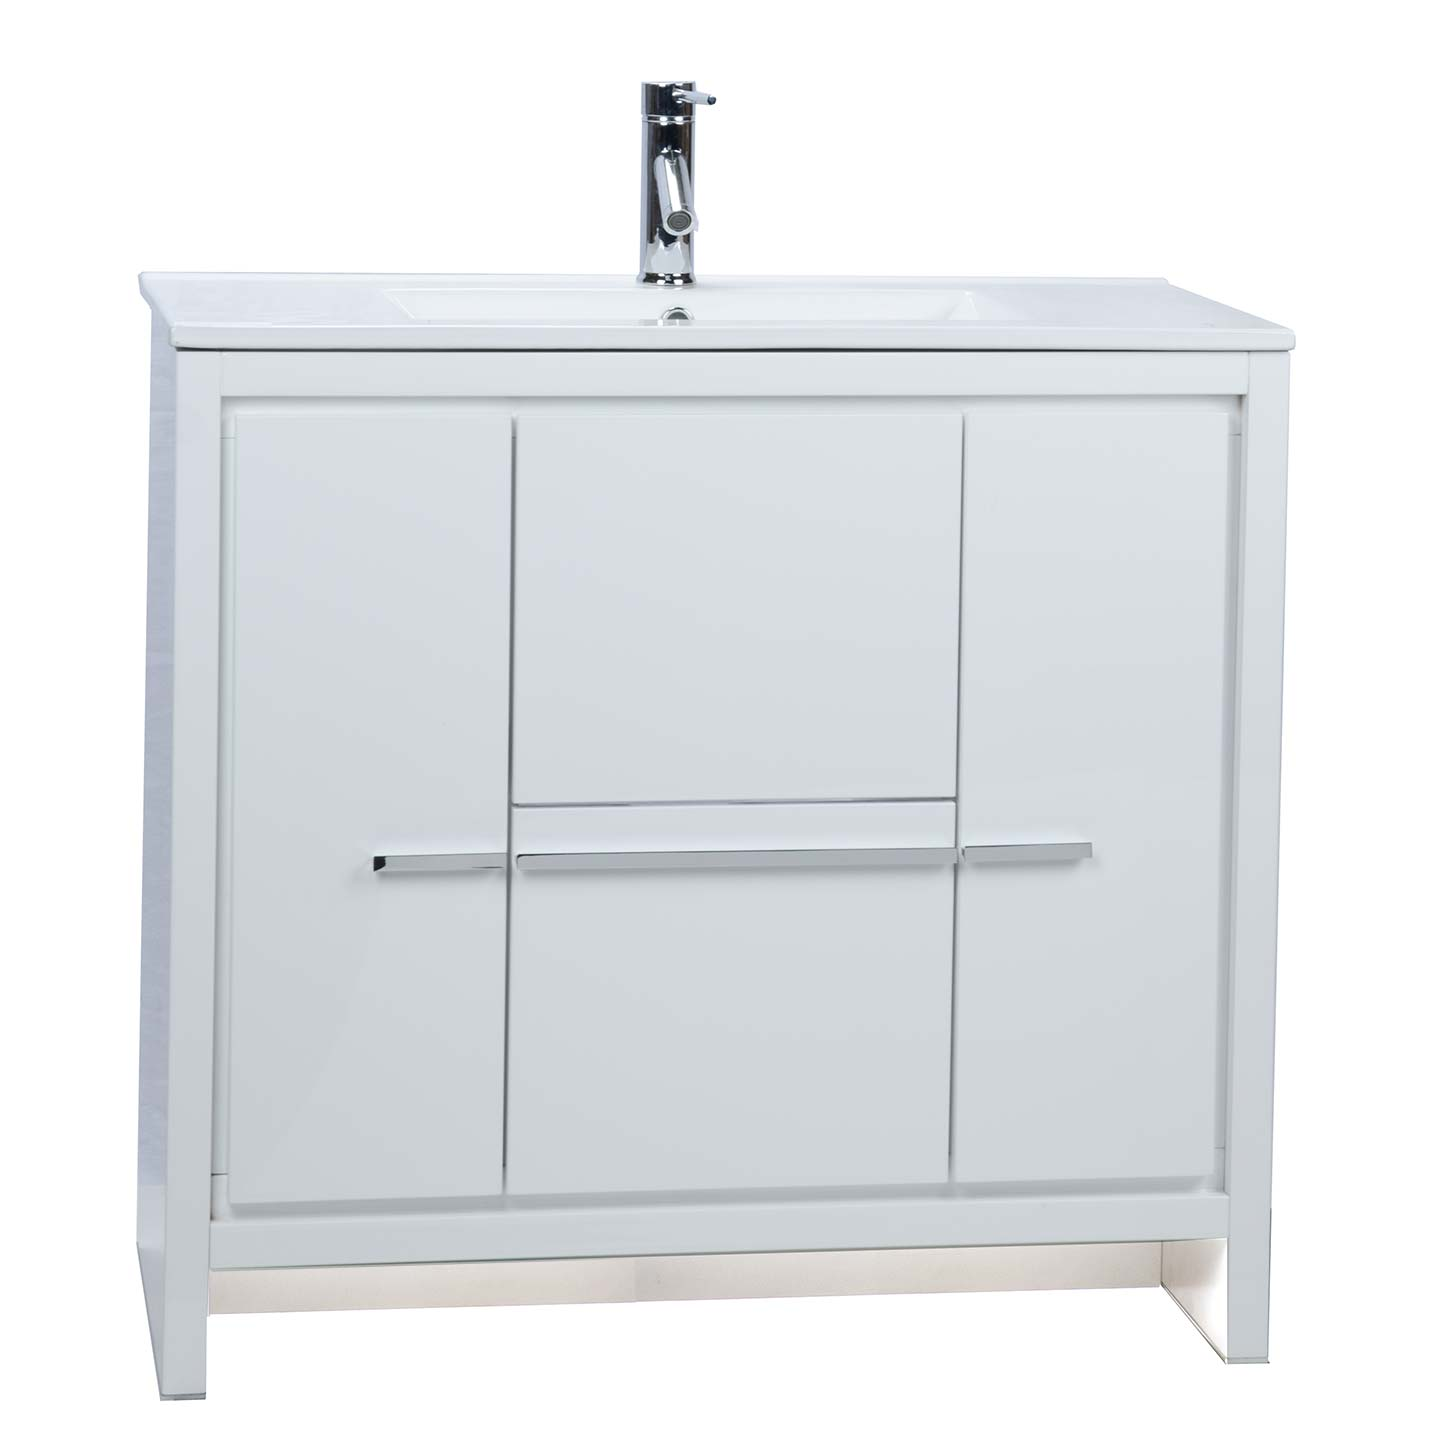 Buy CBI Enna 36 Inch Modern Bathroom Vanity High Gloss